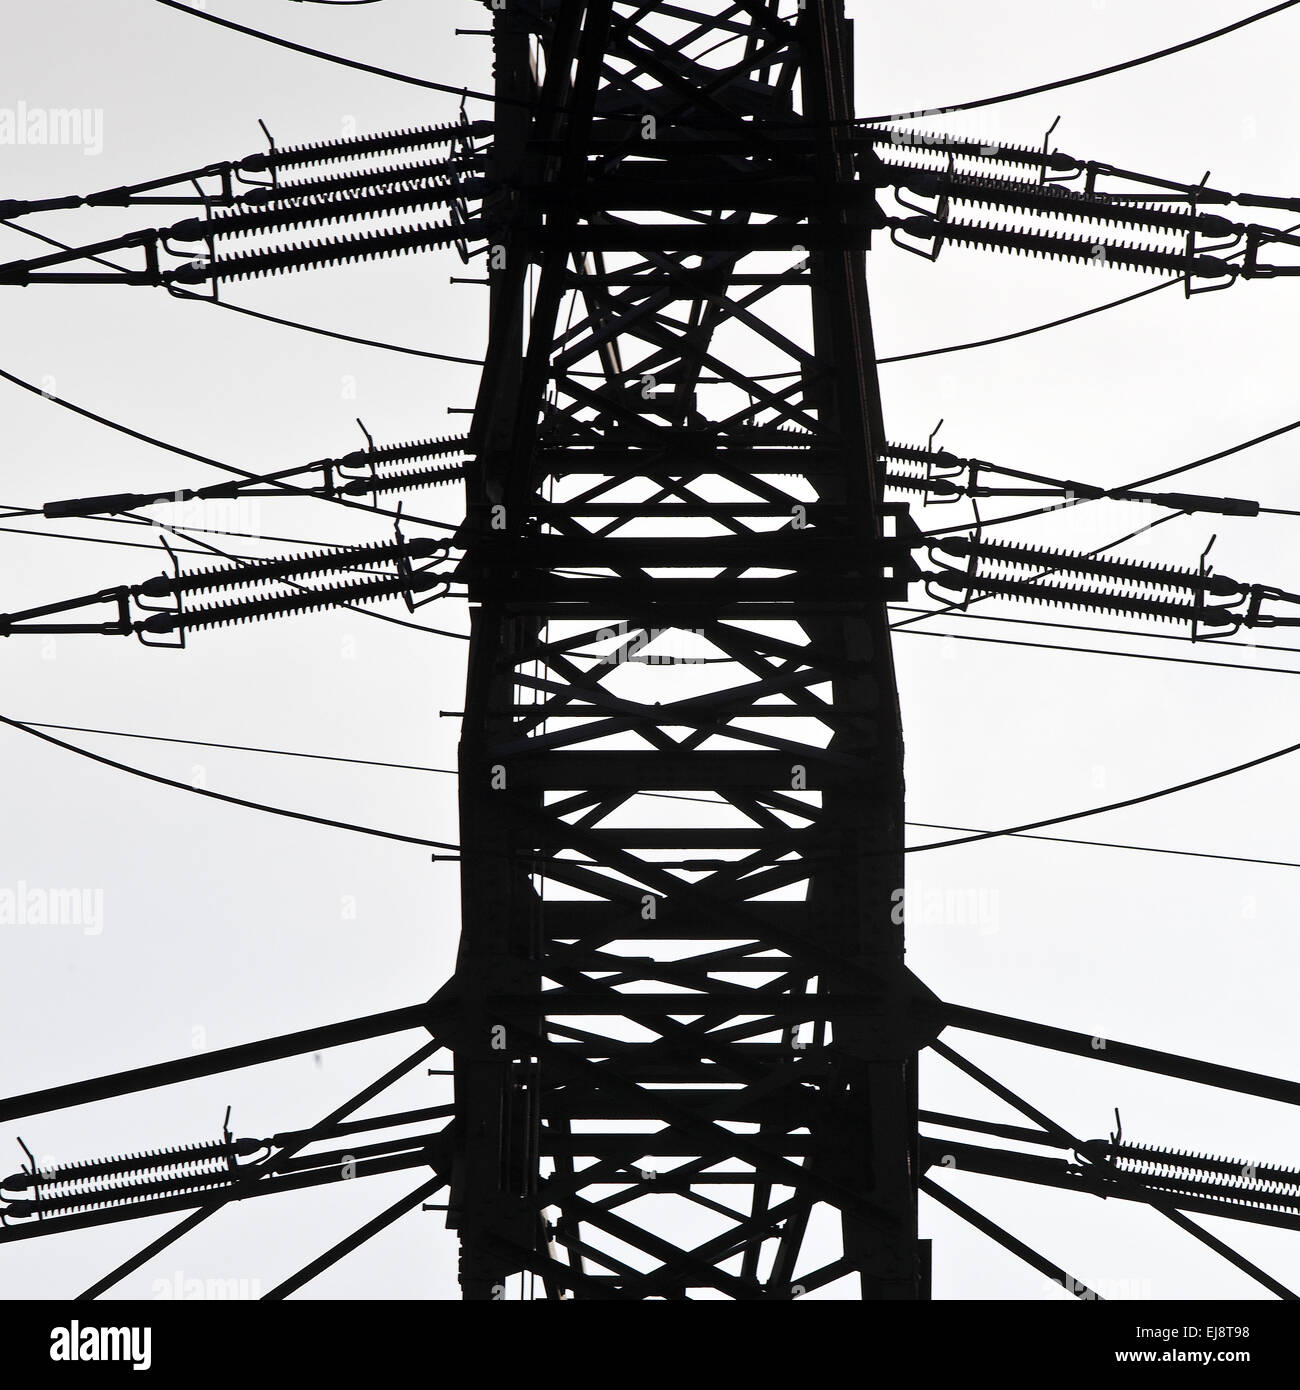 High voltage power pylons - Stock Image